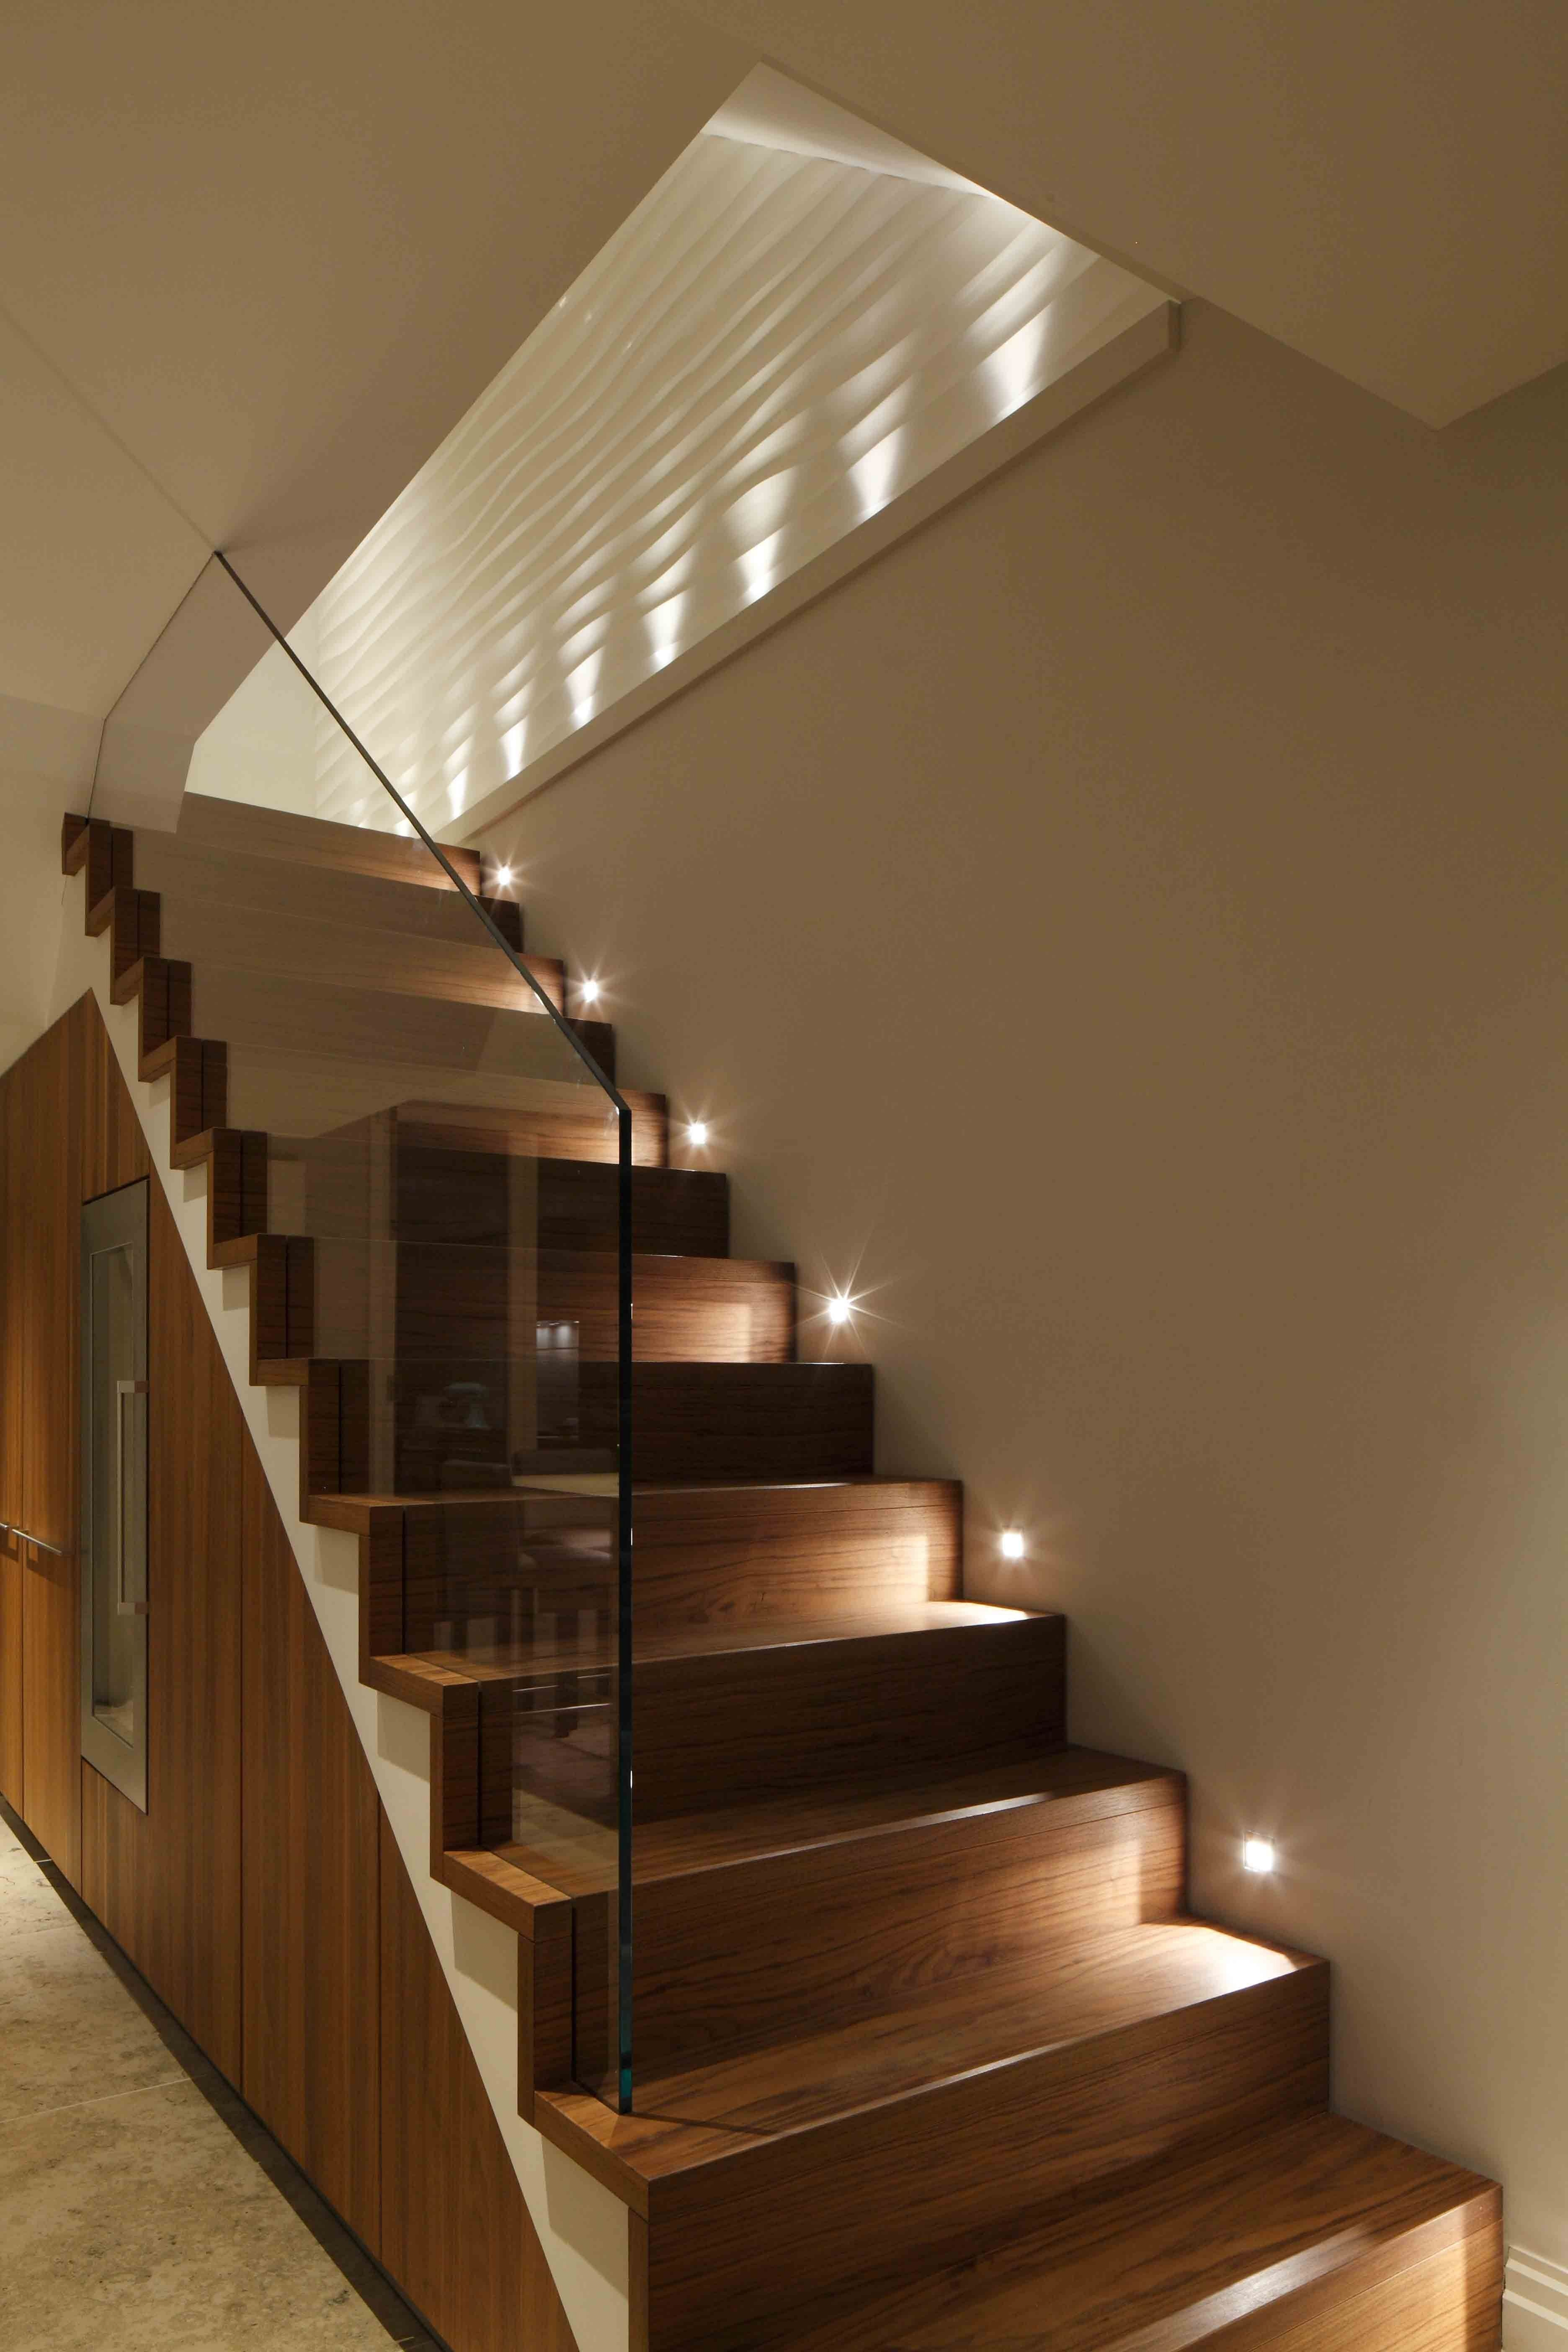 awesome interesting 8 indoor staircase lighting design ideas for your home https hroomy com home decor int stairway design stairway lighting staircase design